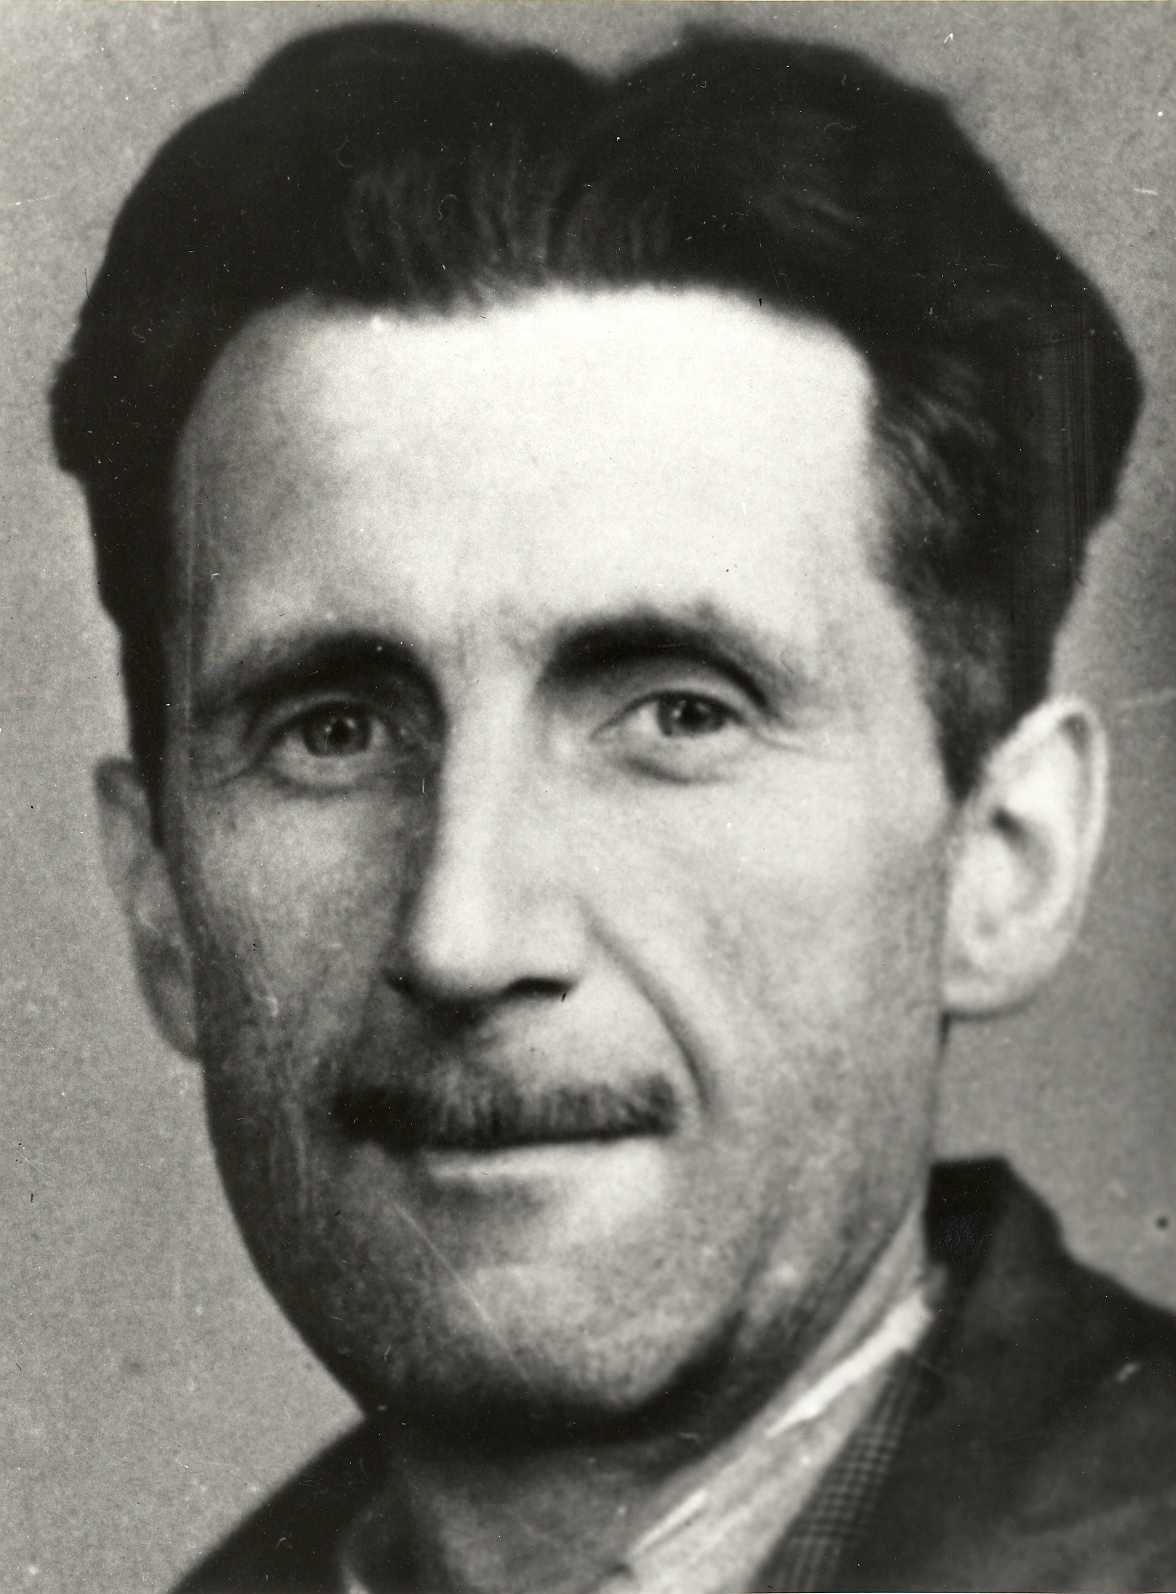 Orwell's [[press card]] portrait, 1943